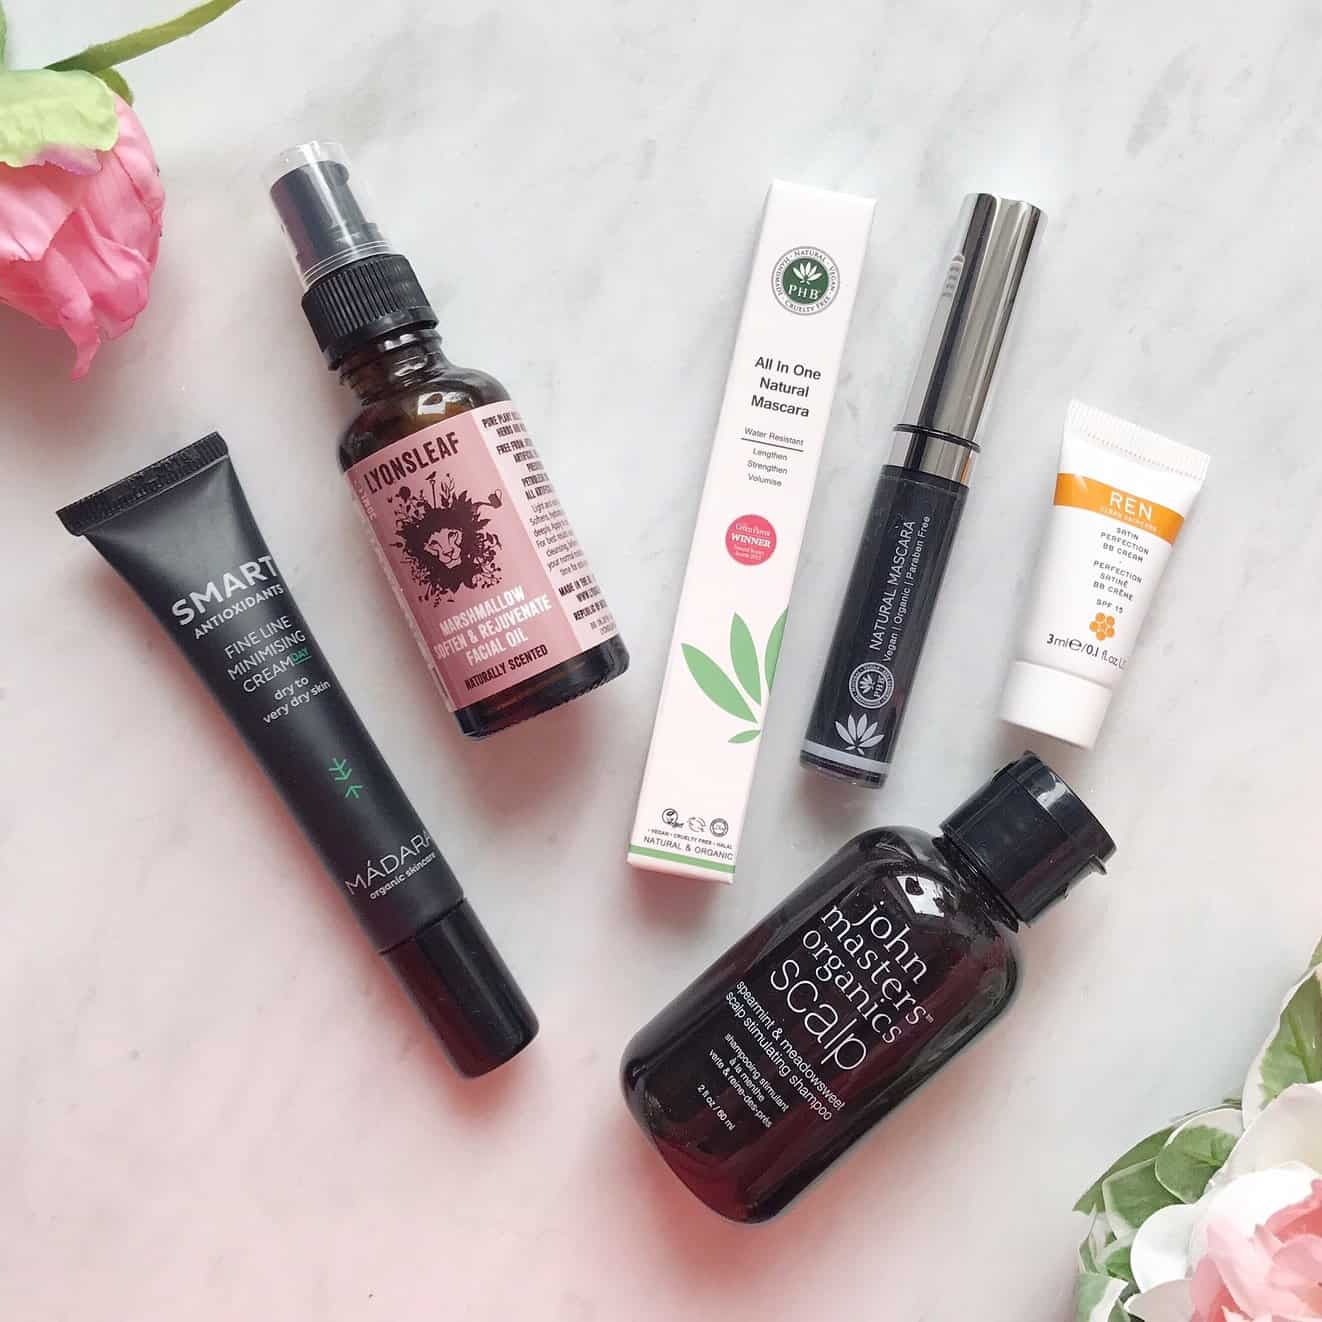 The contents of the July Love Lula Beauty Box